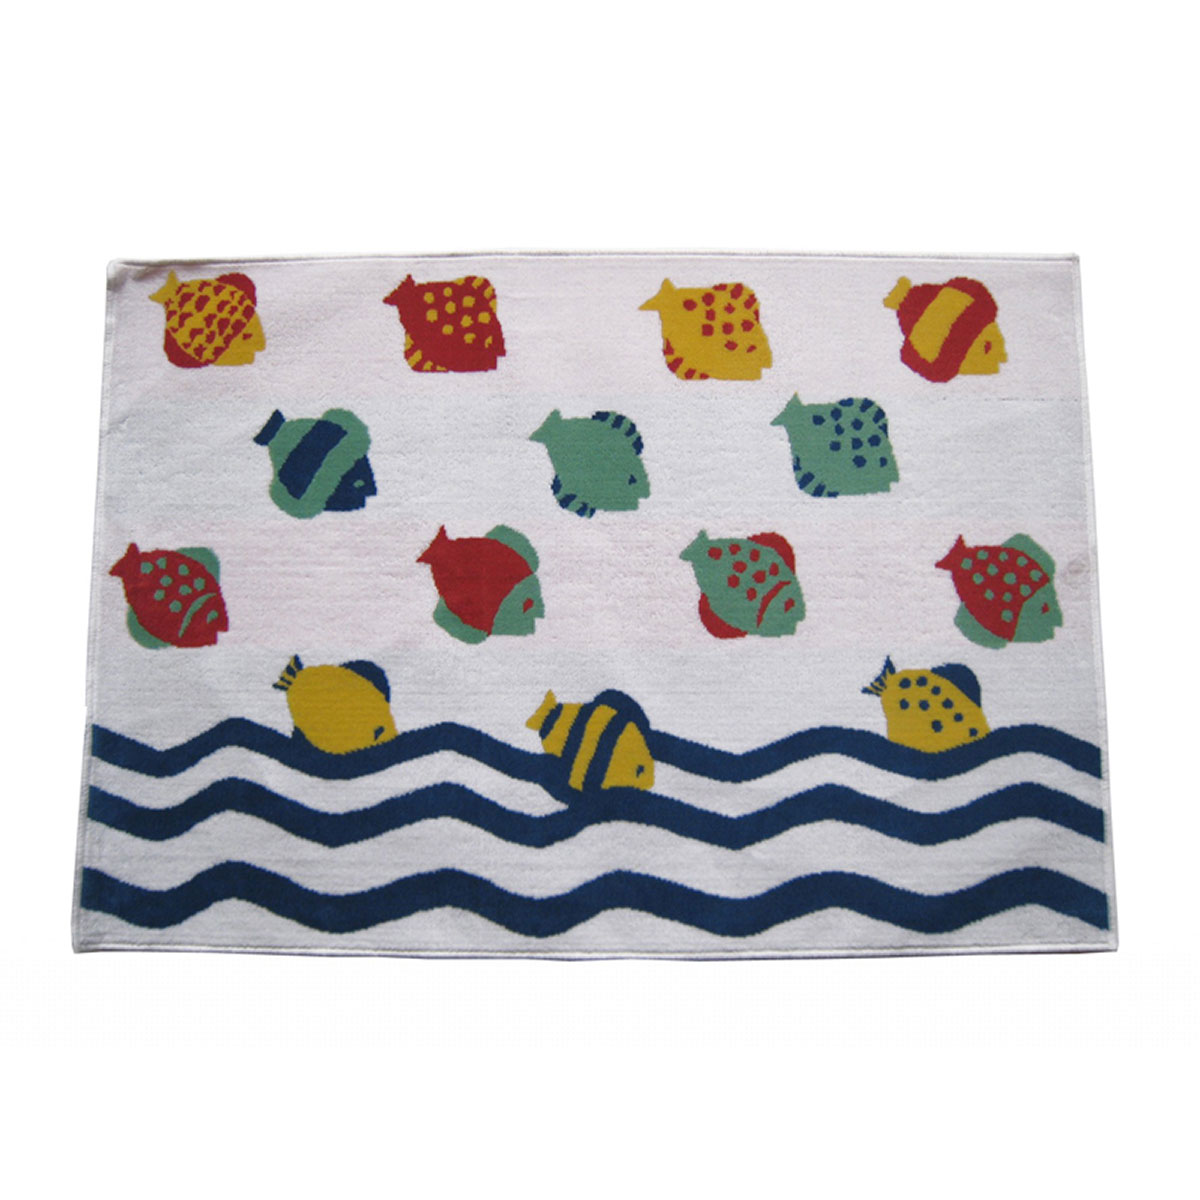 Tapis de bain velours à poissons colorés ( Multicolore)